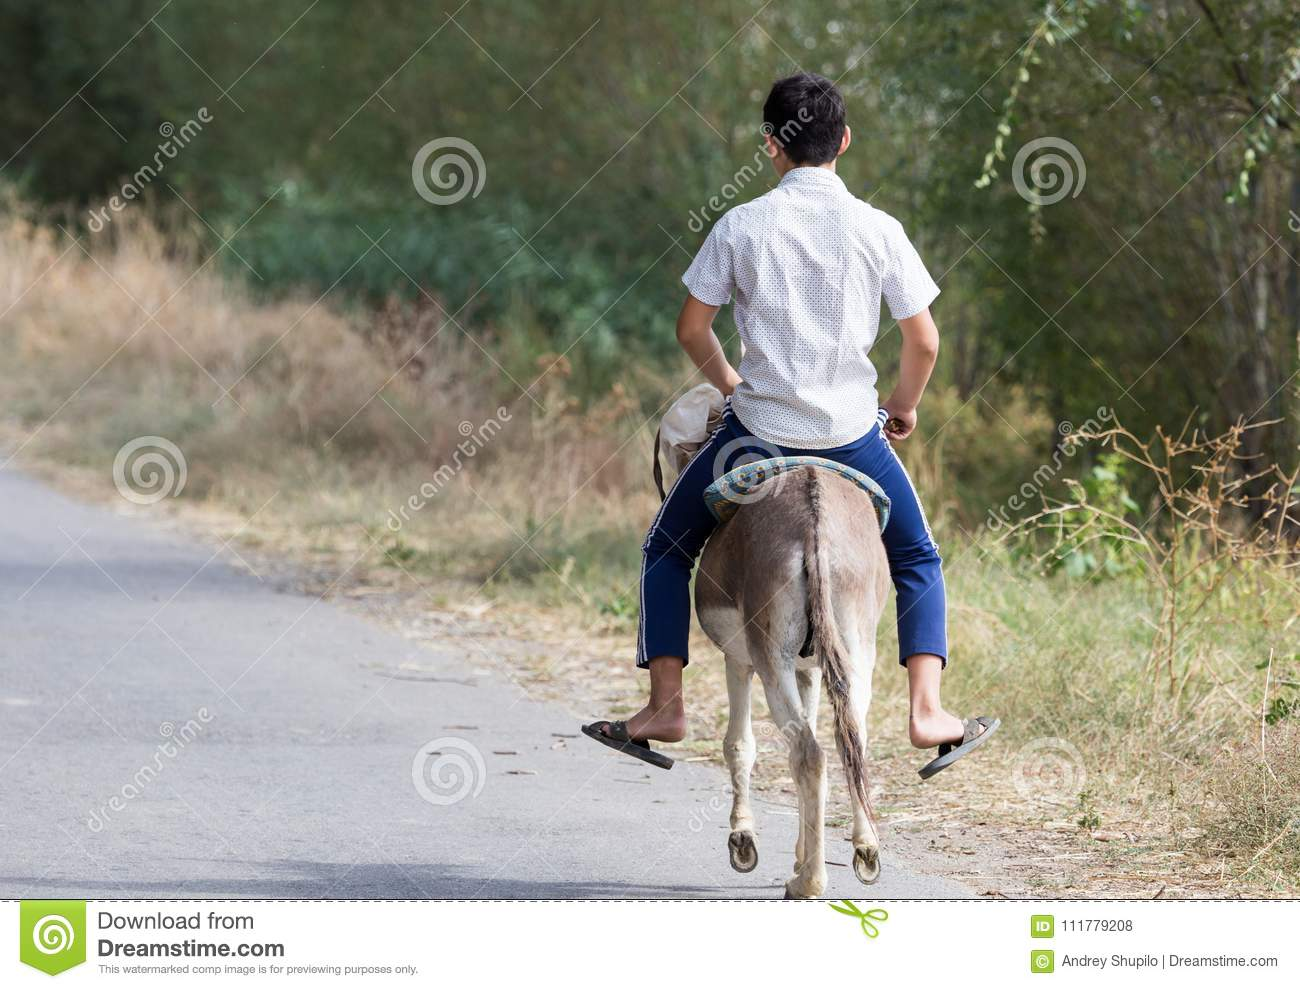 Boy rides on a donkey on the road